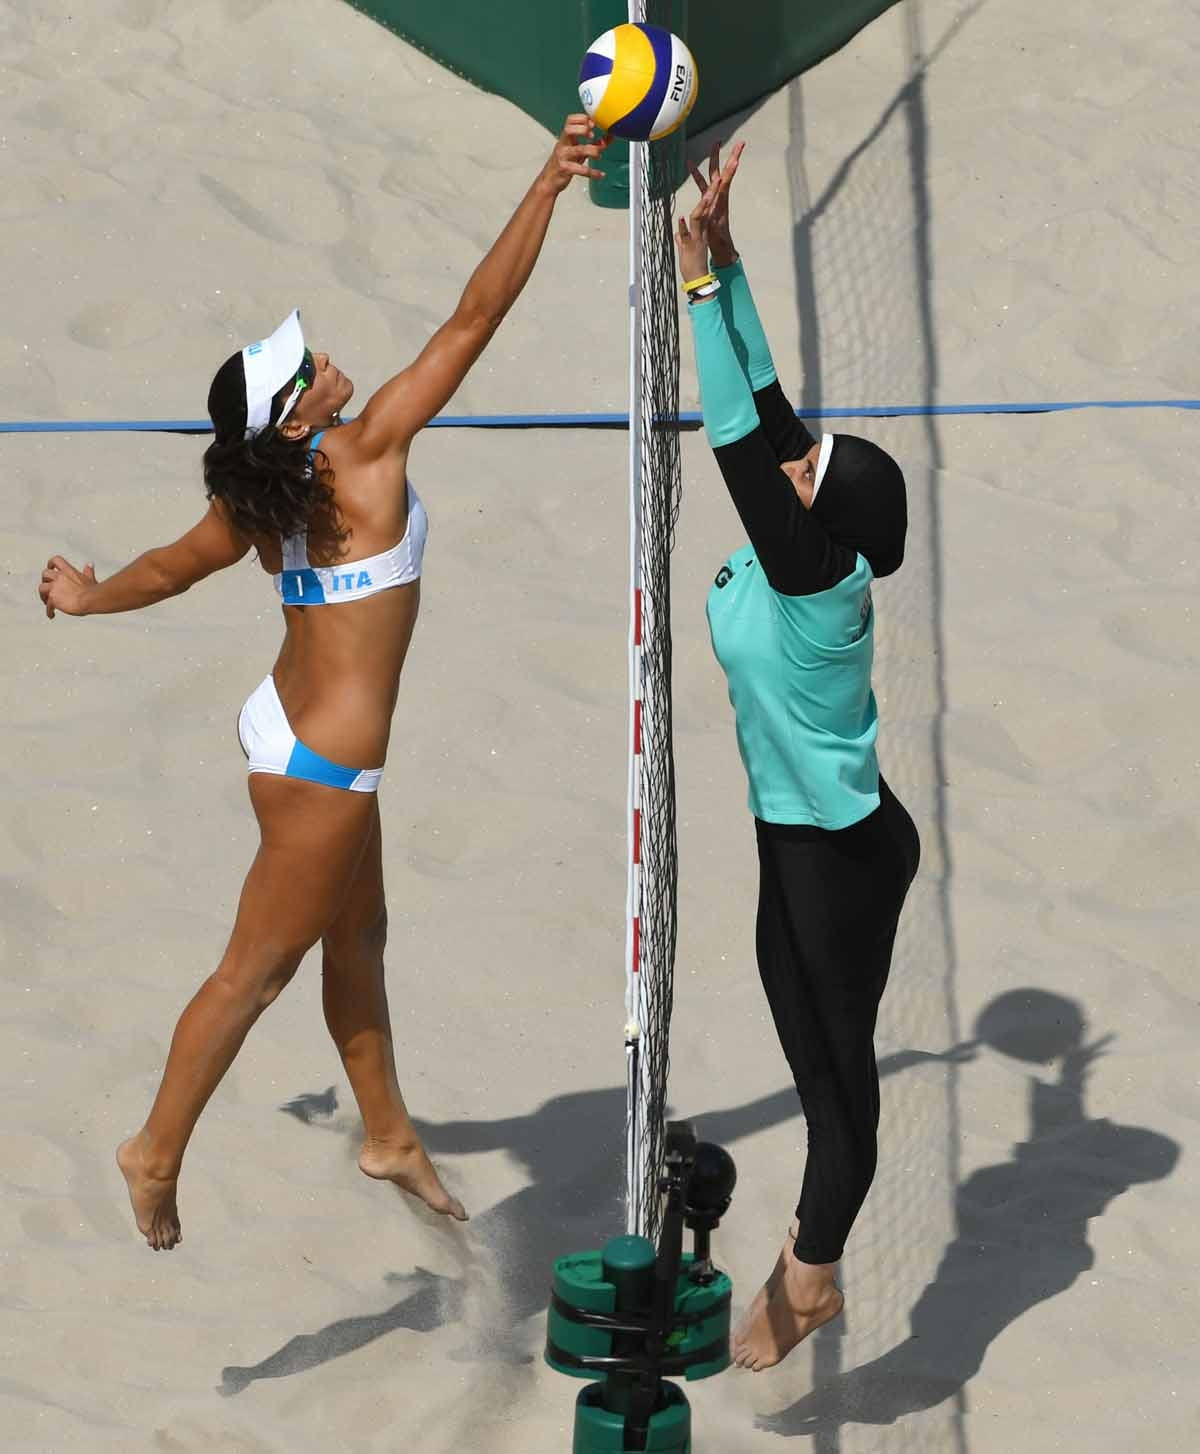 Italy's Marta Menegatti (L) jumps for the ball during the women's beach volleyball qualifying match between Italy and Egypt at the Beach Volley Arena in Rio de Janeiro on August 9, 2016, for the Rio 2016 Olympic Games.